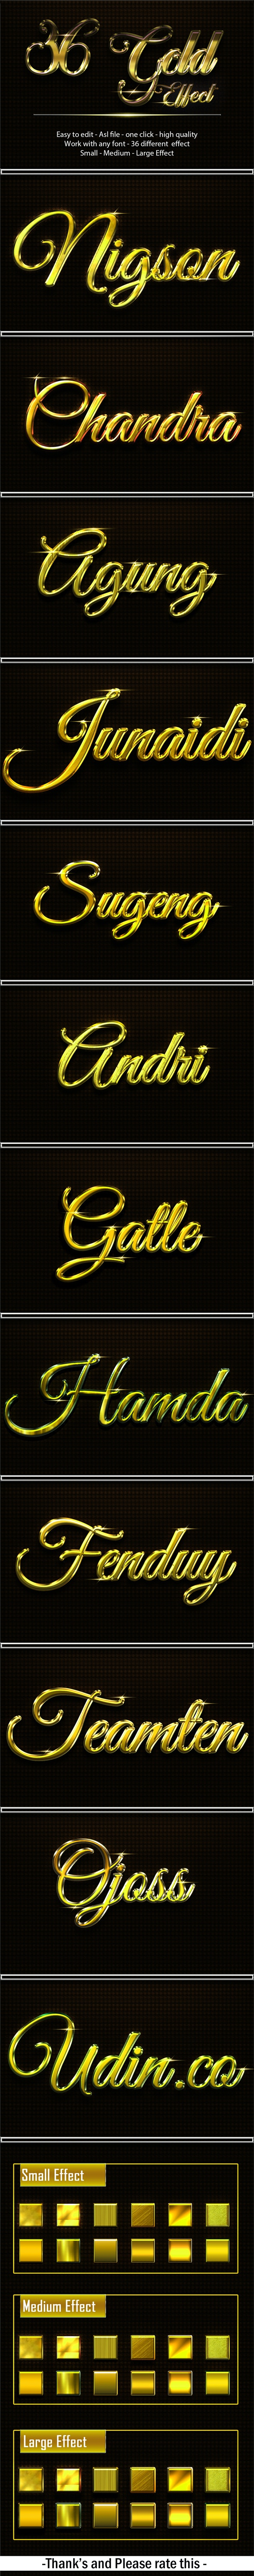 36 Gold Effect - Text Effects Styles